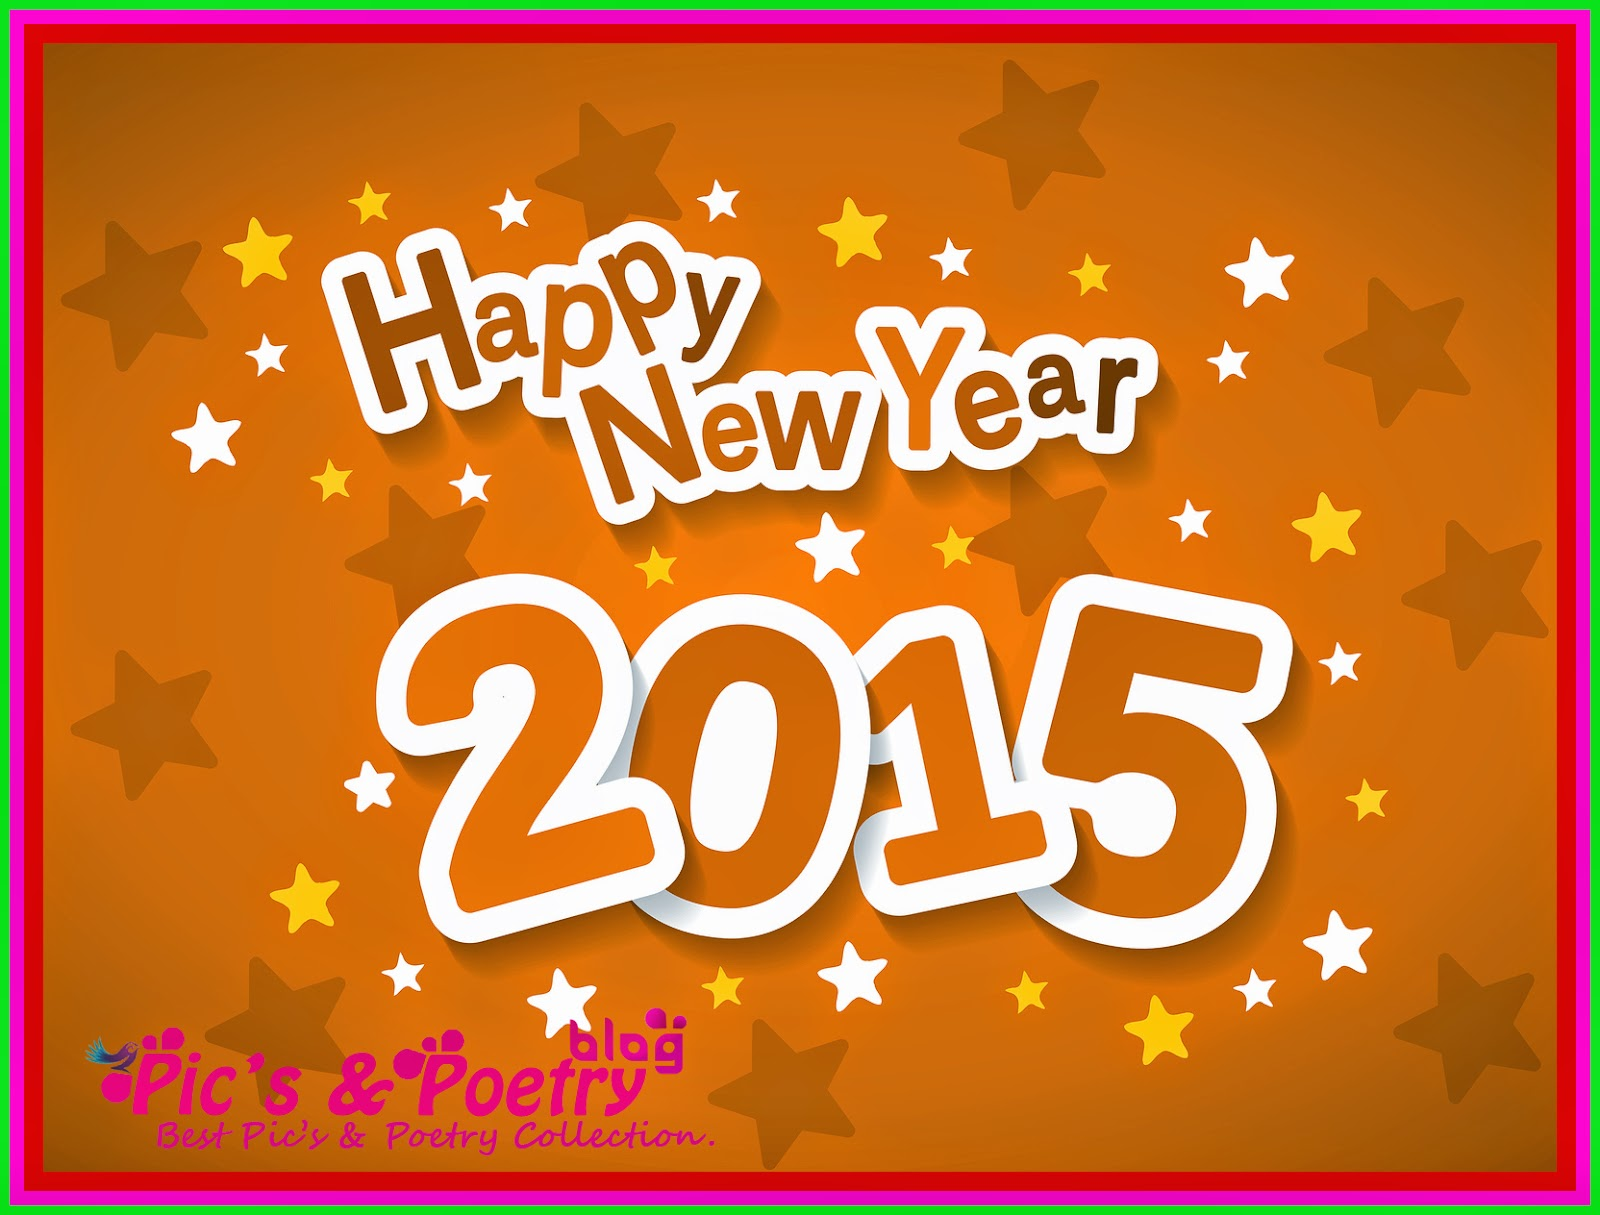 Happy new year 2015 greetings with images and quotes kristyandbryce Choice Image